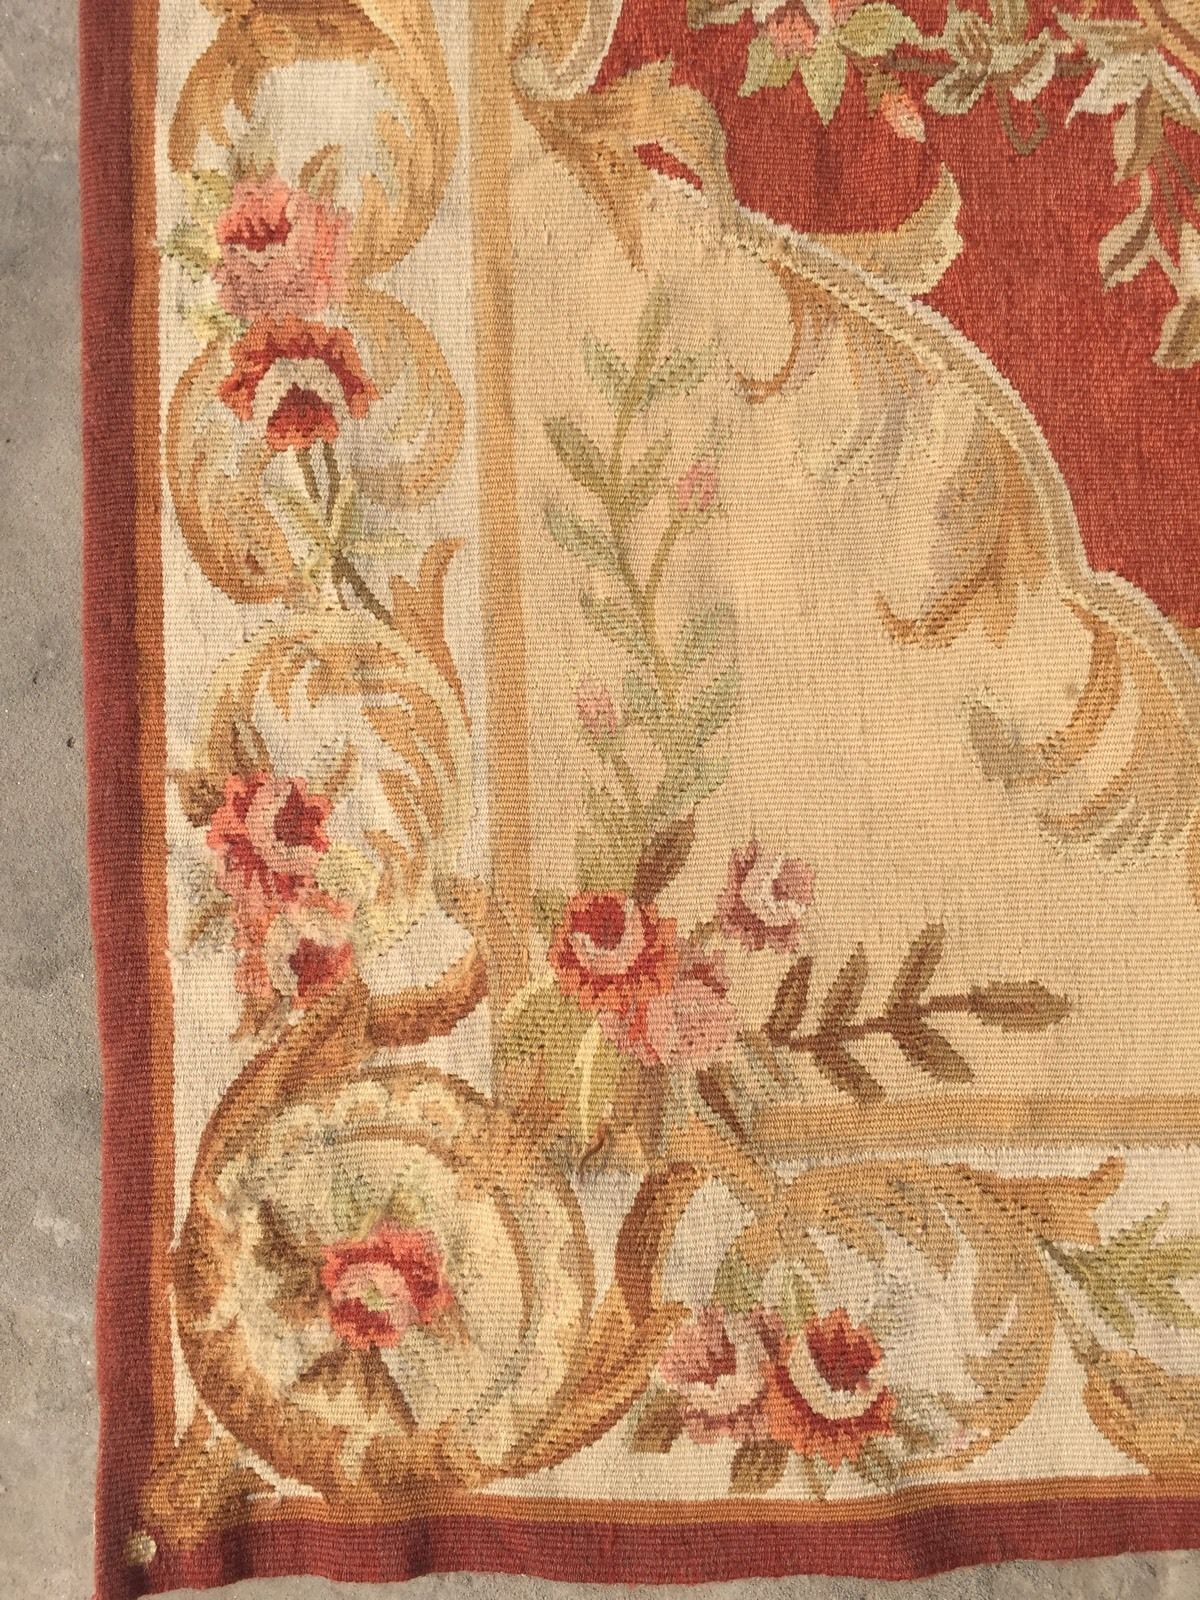 Old Handmade French Design Original Wool Aubusson Rug Tapestry 90 X 150 Cm 275 00 Picclick Uk